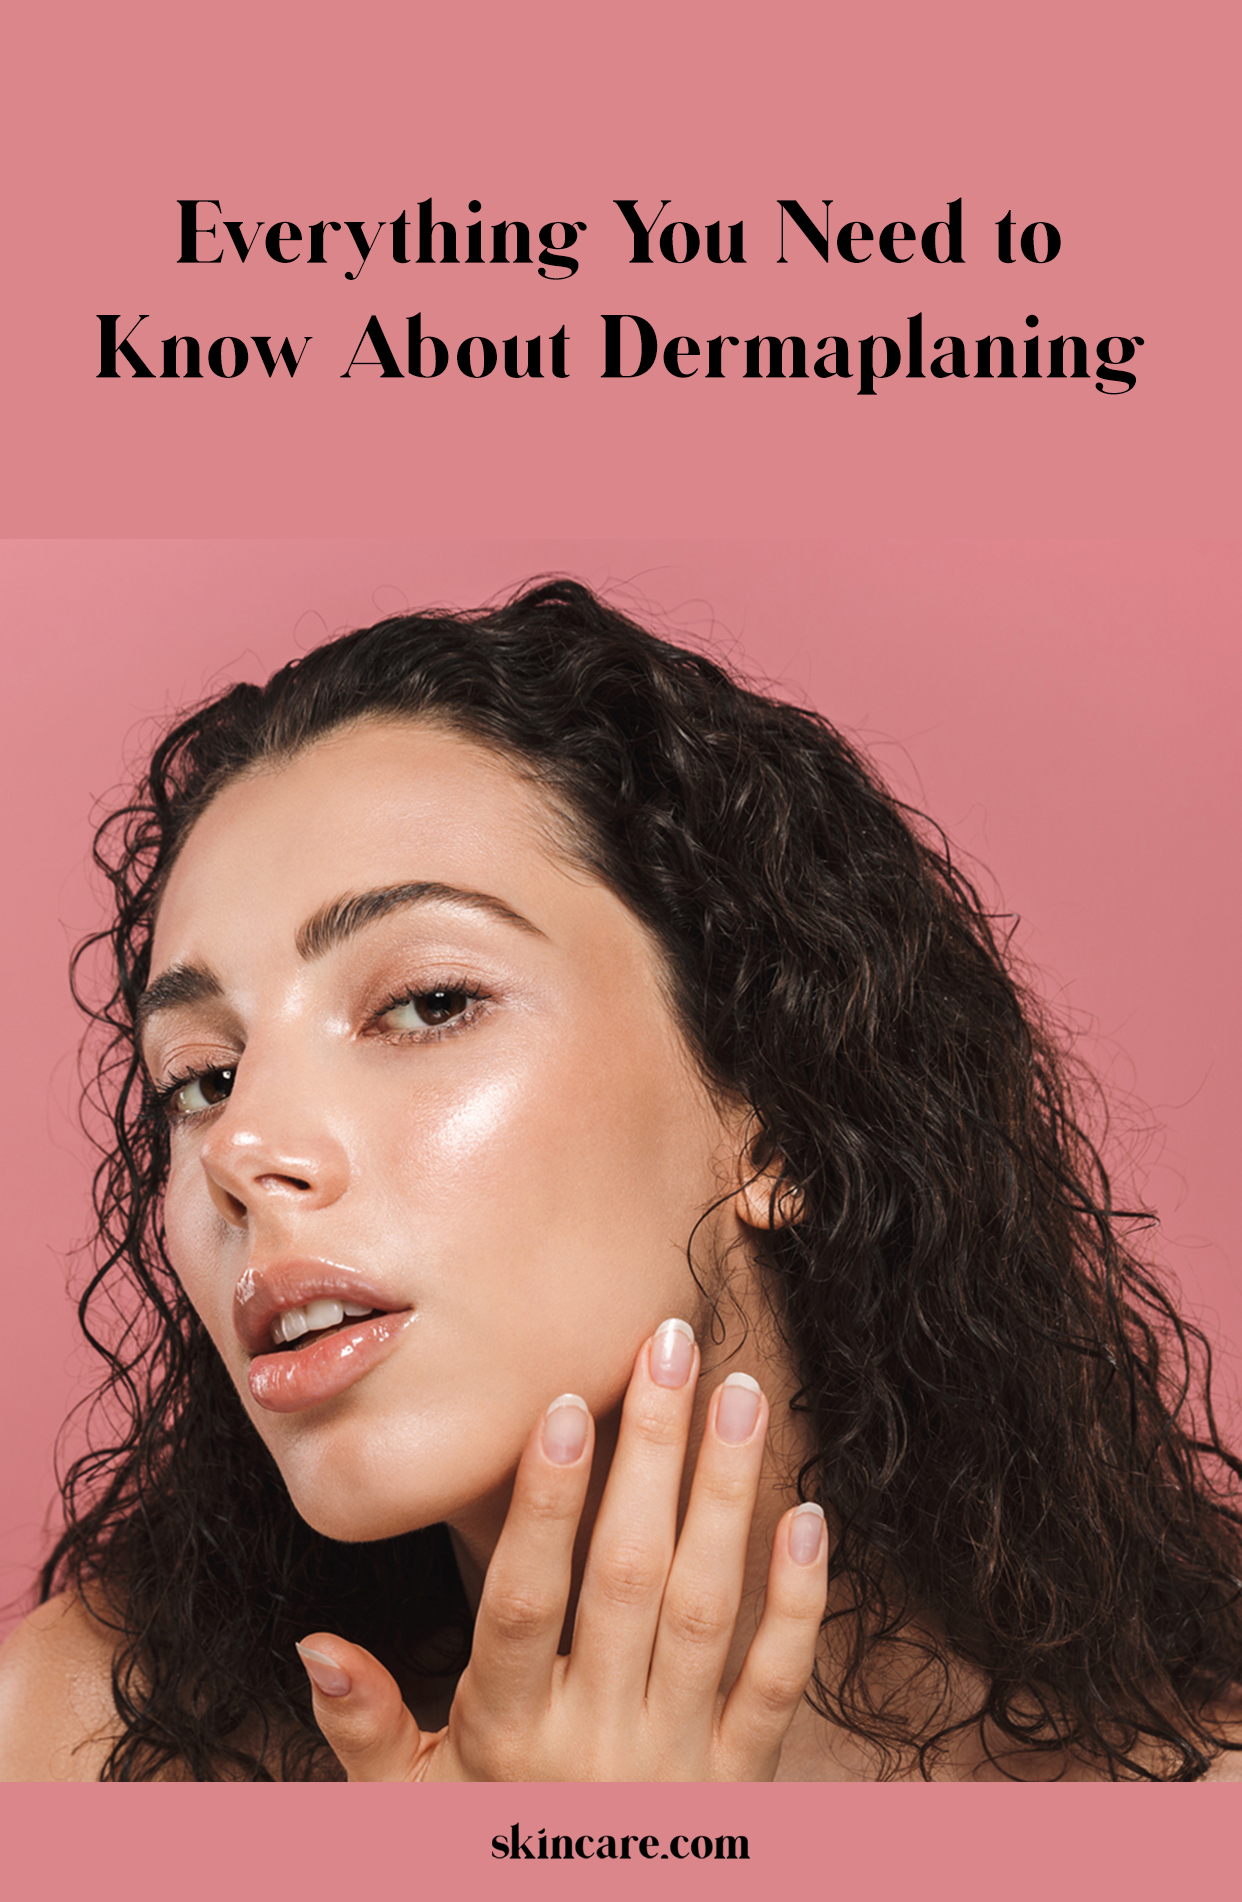 Shaving Face What Is Dermaplaning? in 2020 Oily skin